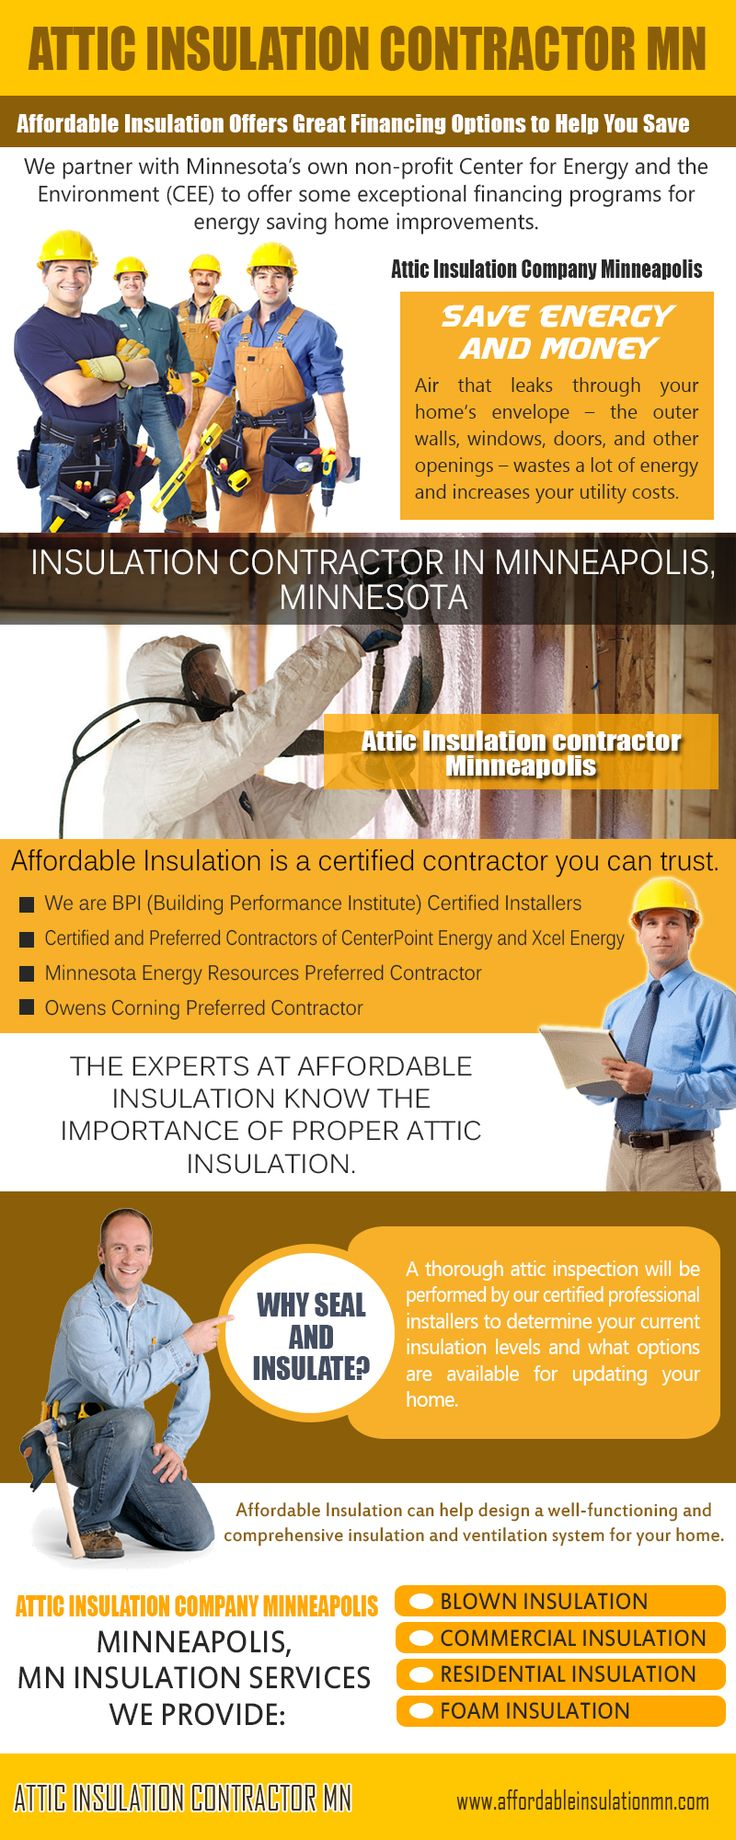 You can hire Attic Insulation contractor MN for that as they know how to make your home temperature comfortable as well as recognizes the importance of tax advantages. This way you can save thousands of dollars each year as tax benefits which can help you in increasing your overall saving in the year. Look at this web-site http://www.affordableinsulationmn.com/bpi-certified-insulation-contractor-mn/ for more information on Attic Insulation contractor MN.